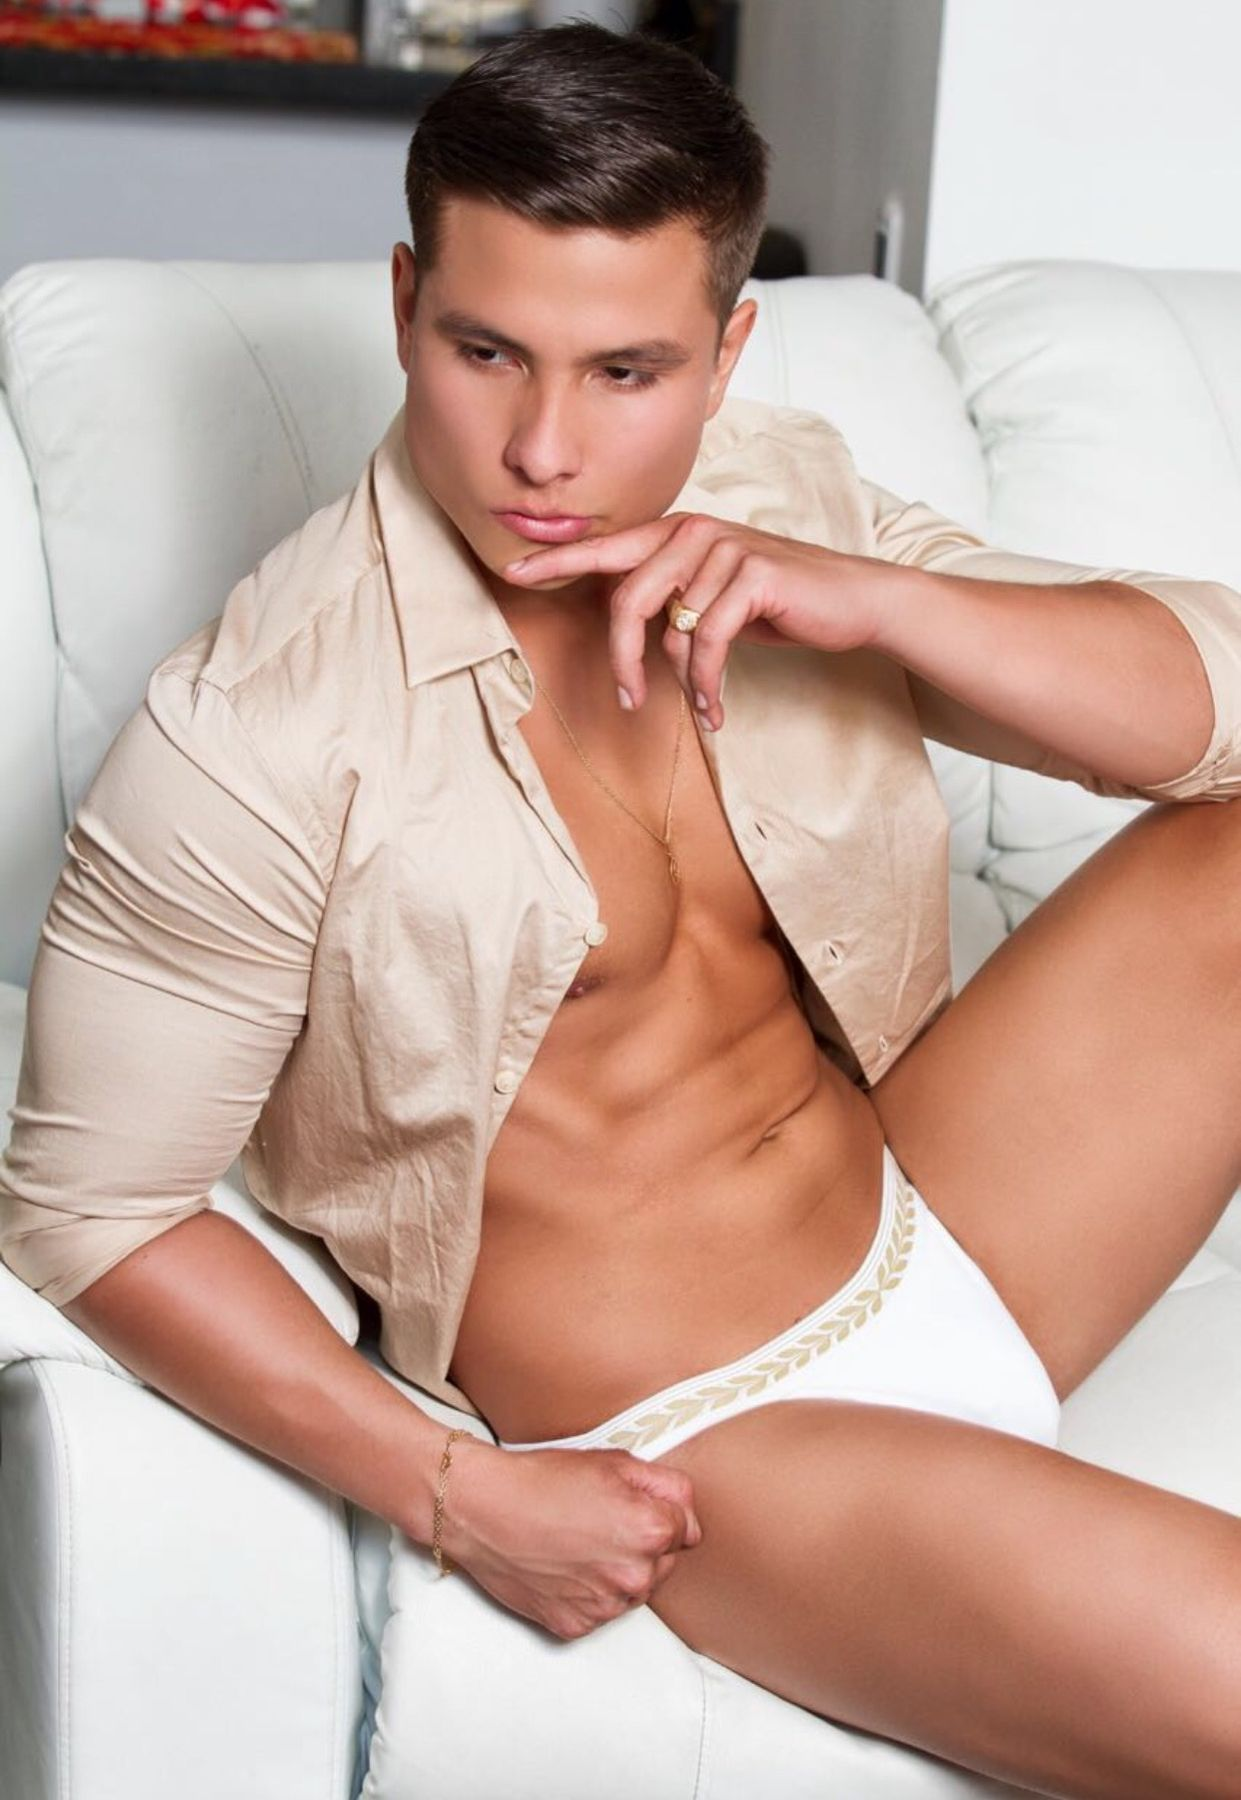 Russian Escort Male Straight Gay Xxx With A Proficient Handcomma Mick